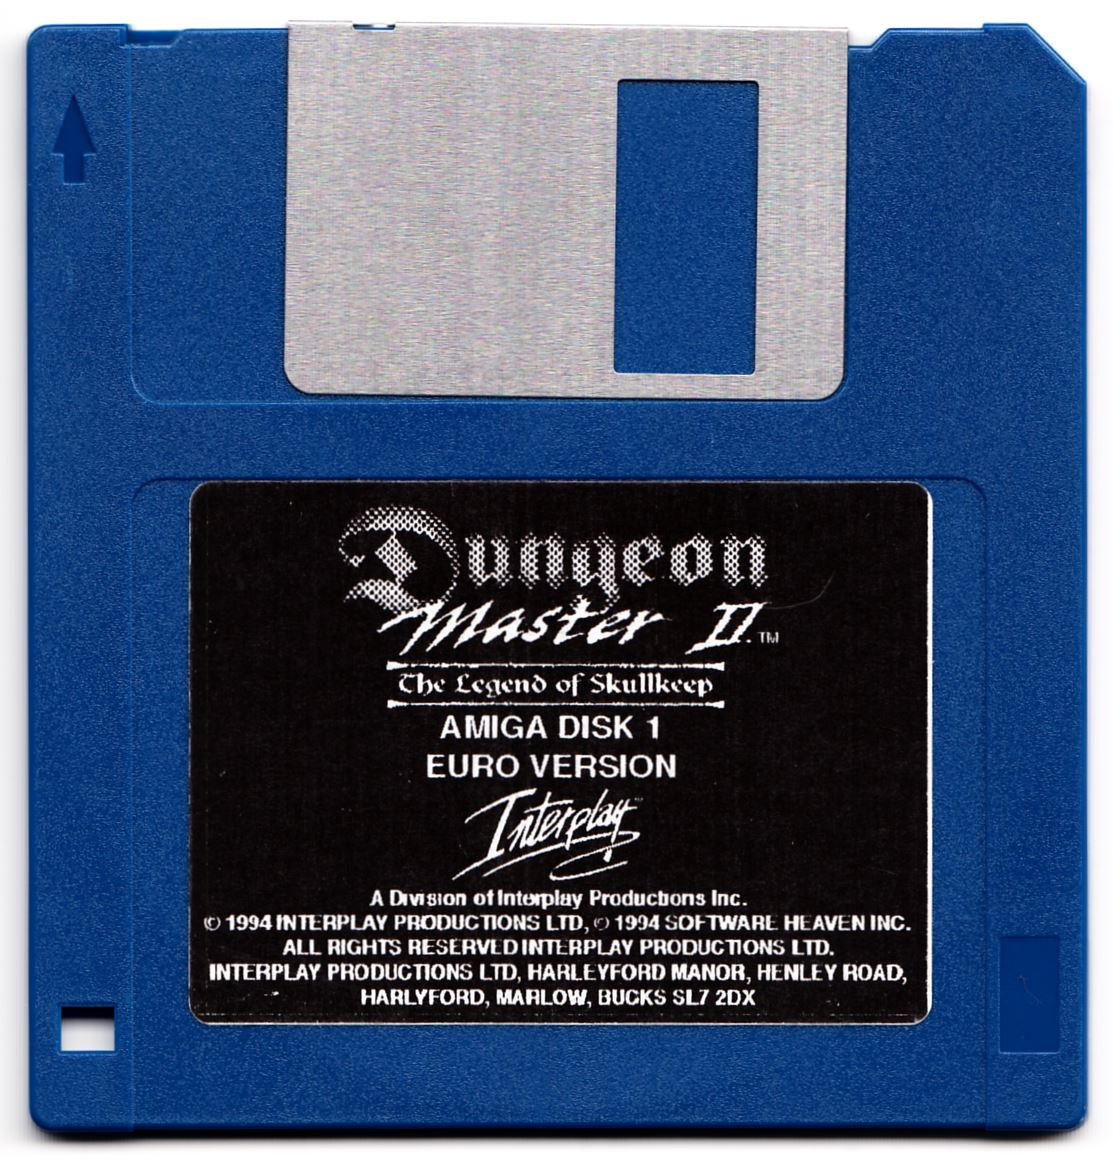 Game - Dungeon Master II - UK - Amiga Alternate - Disk 1 - Front - Scan